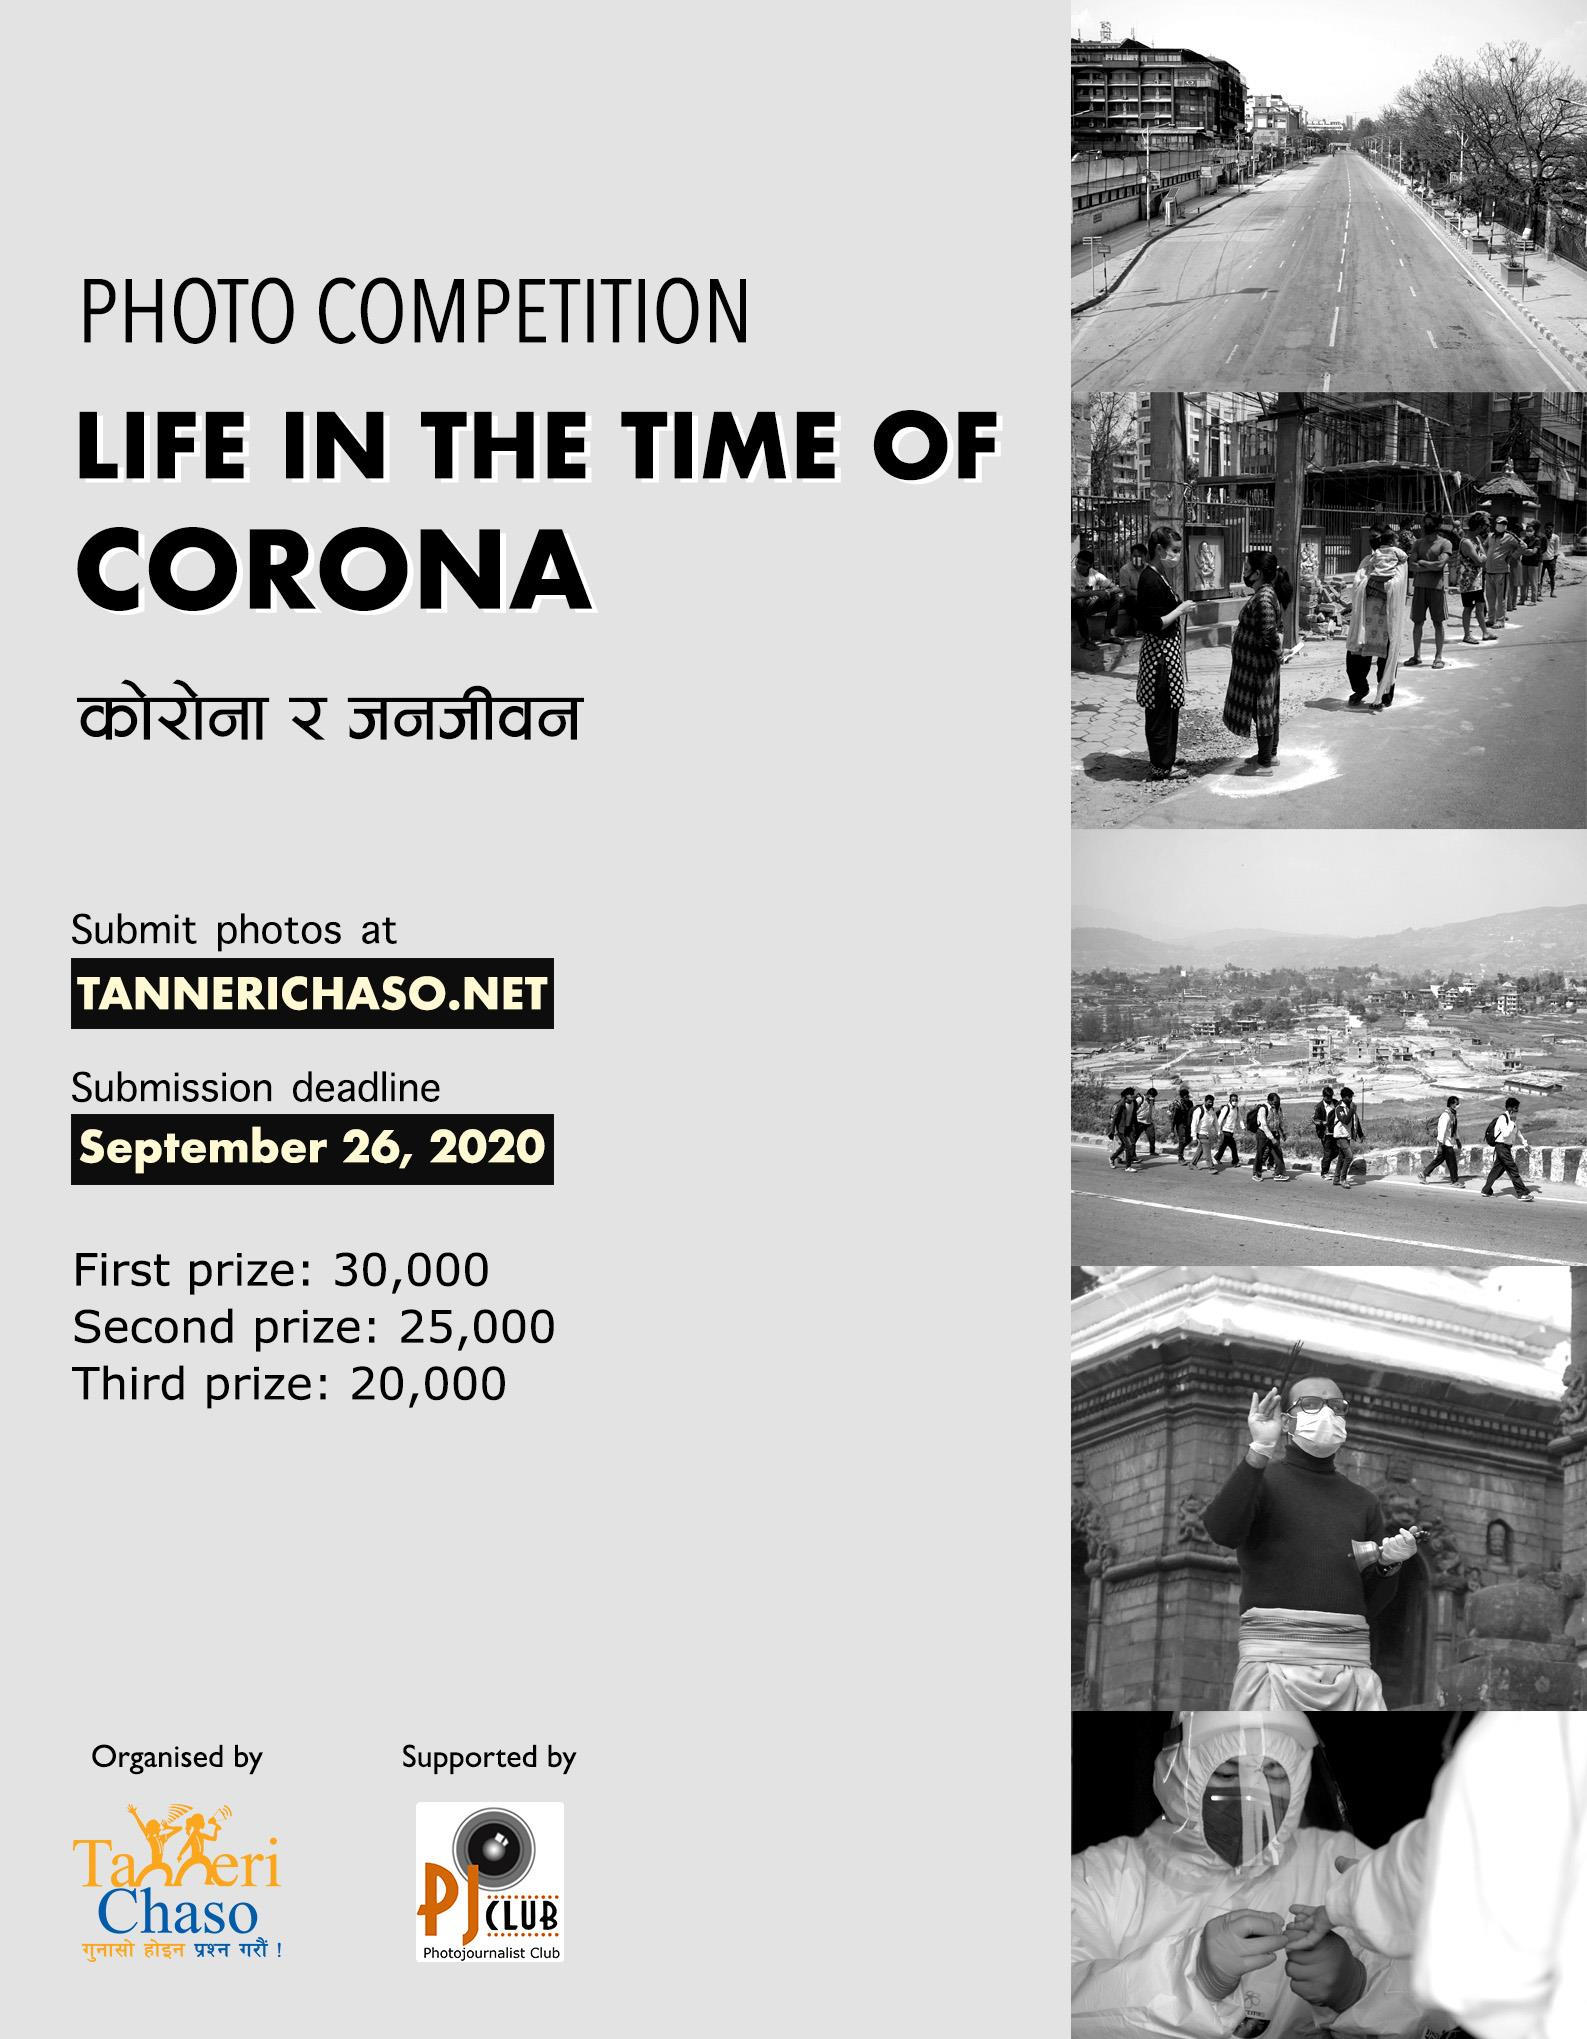 Photo Competition Life in the Time of Corona